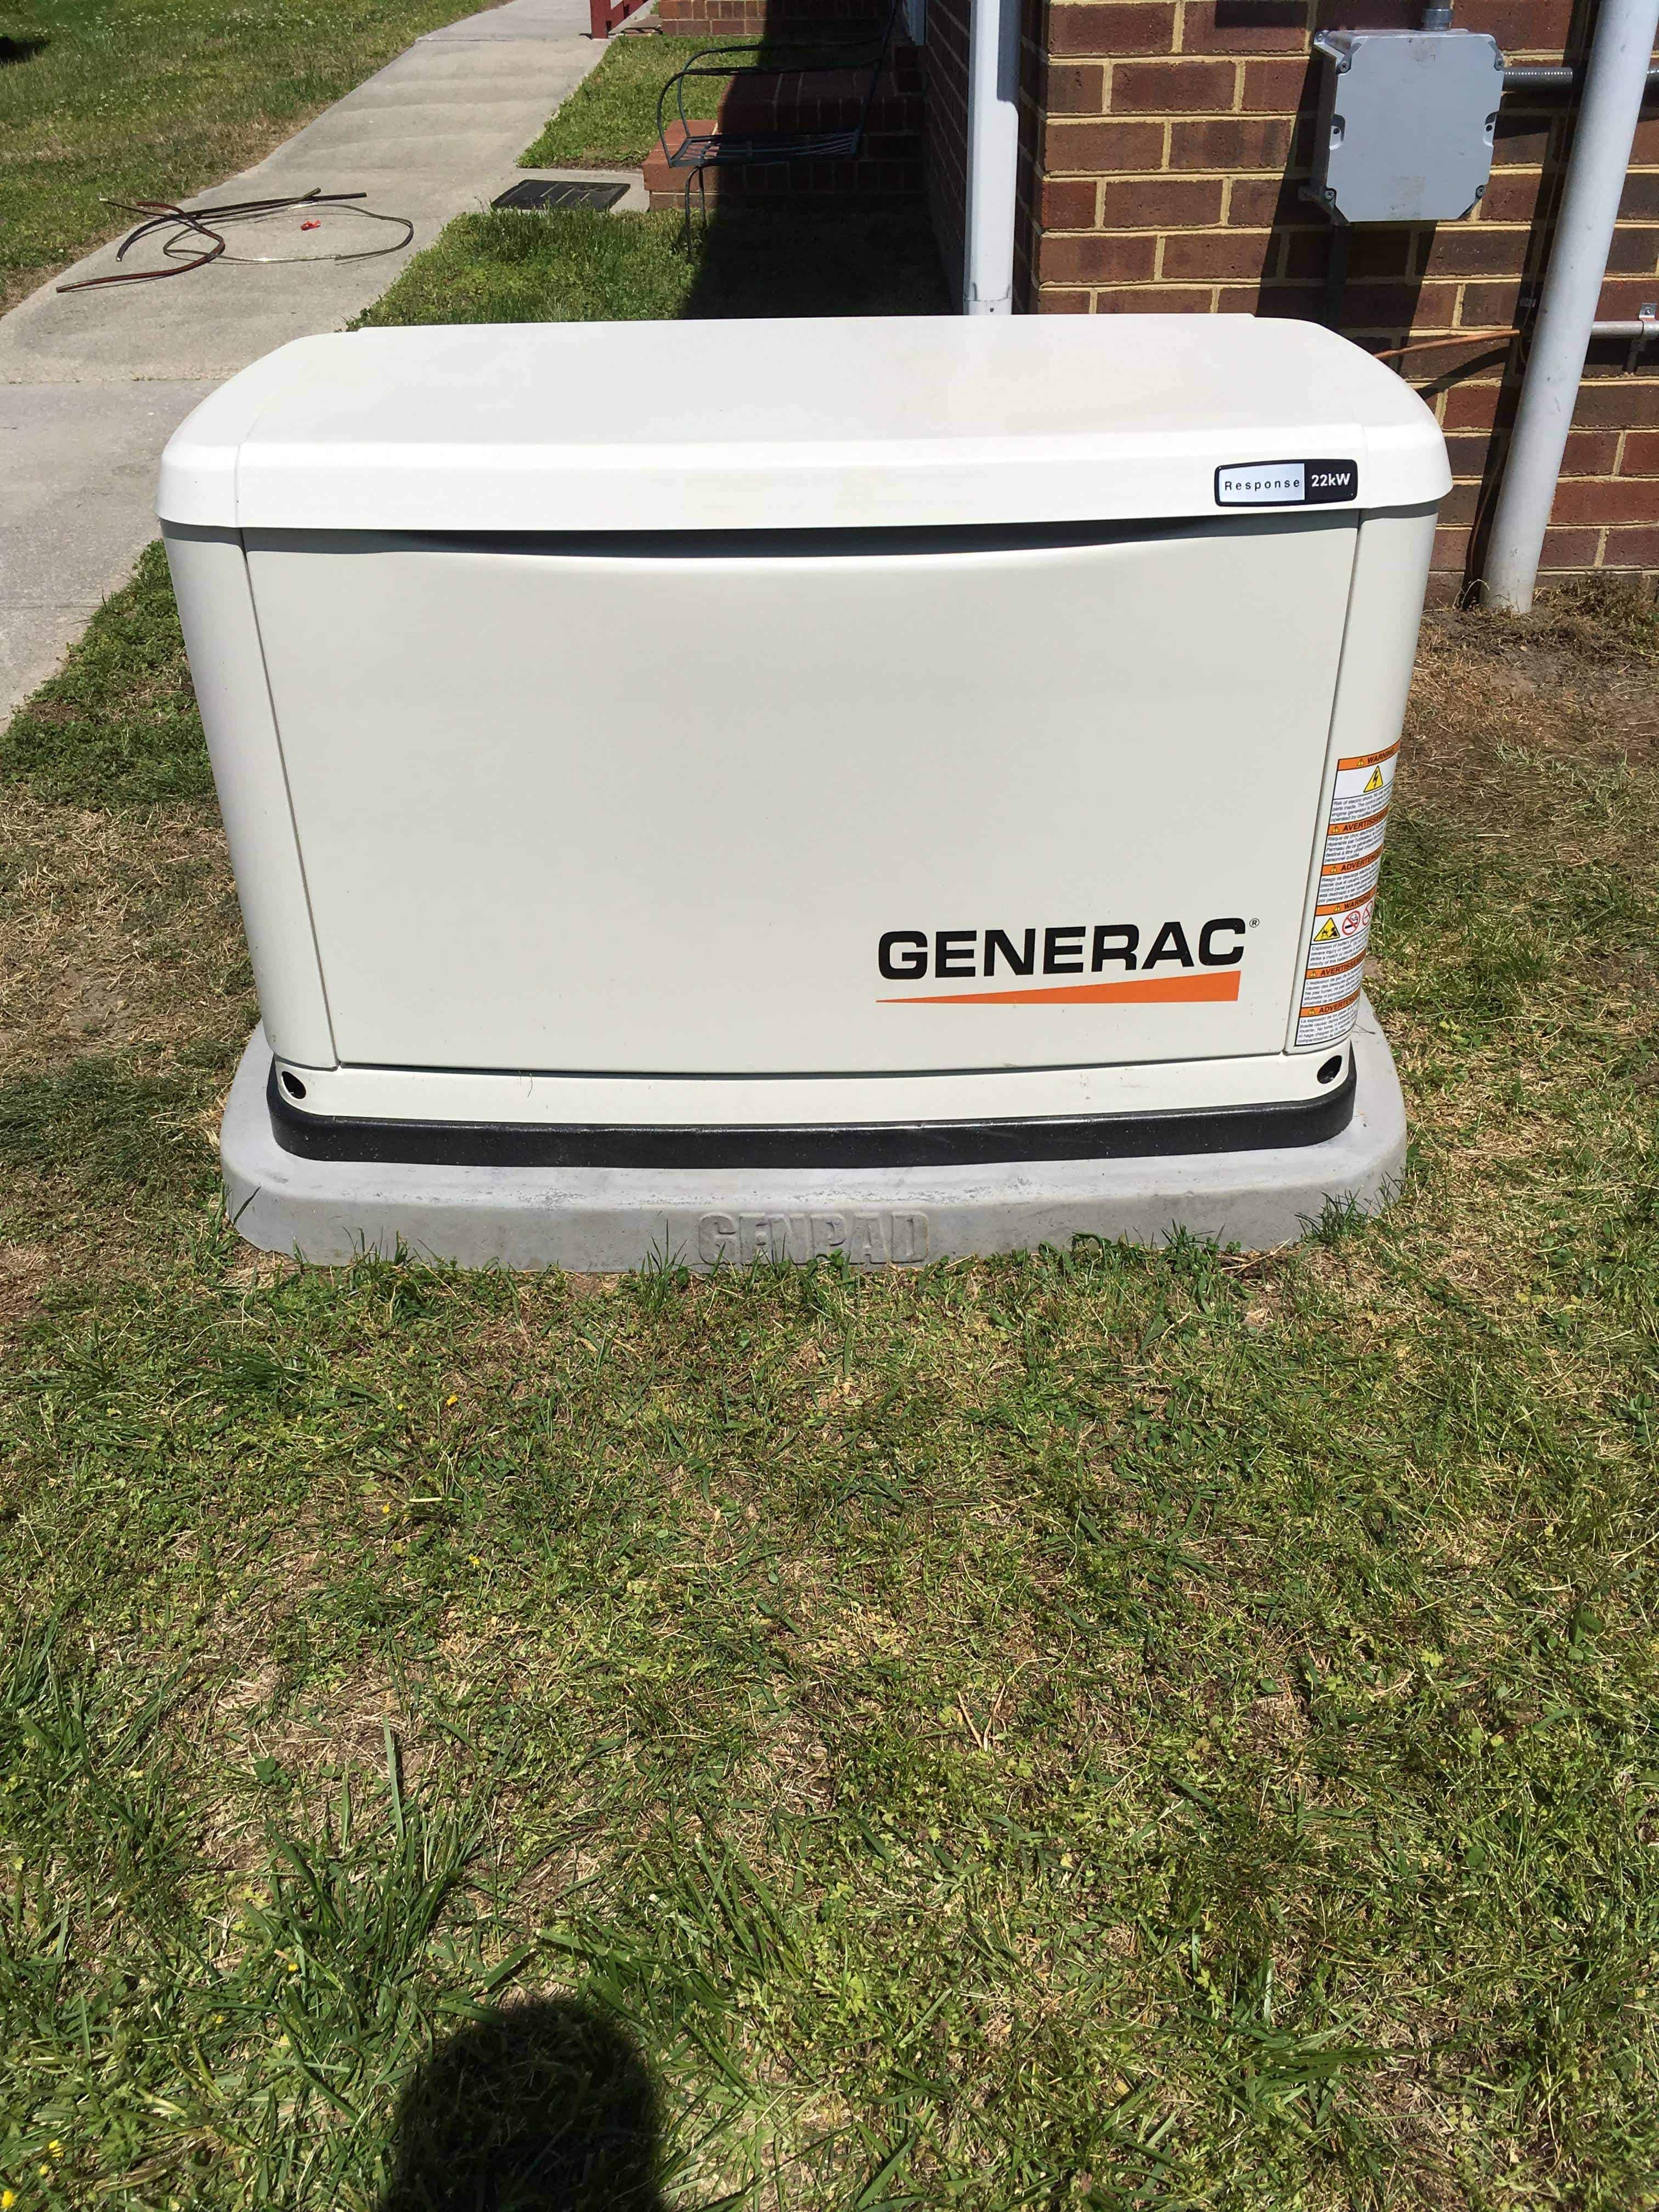 Automatic Standby Generac Generator Prince George County